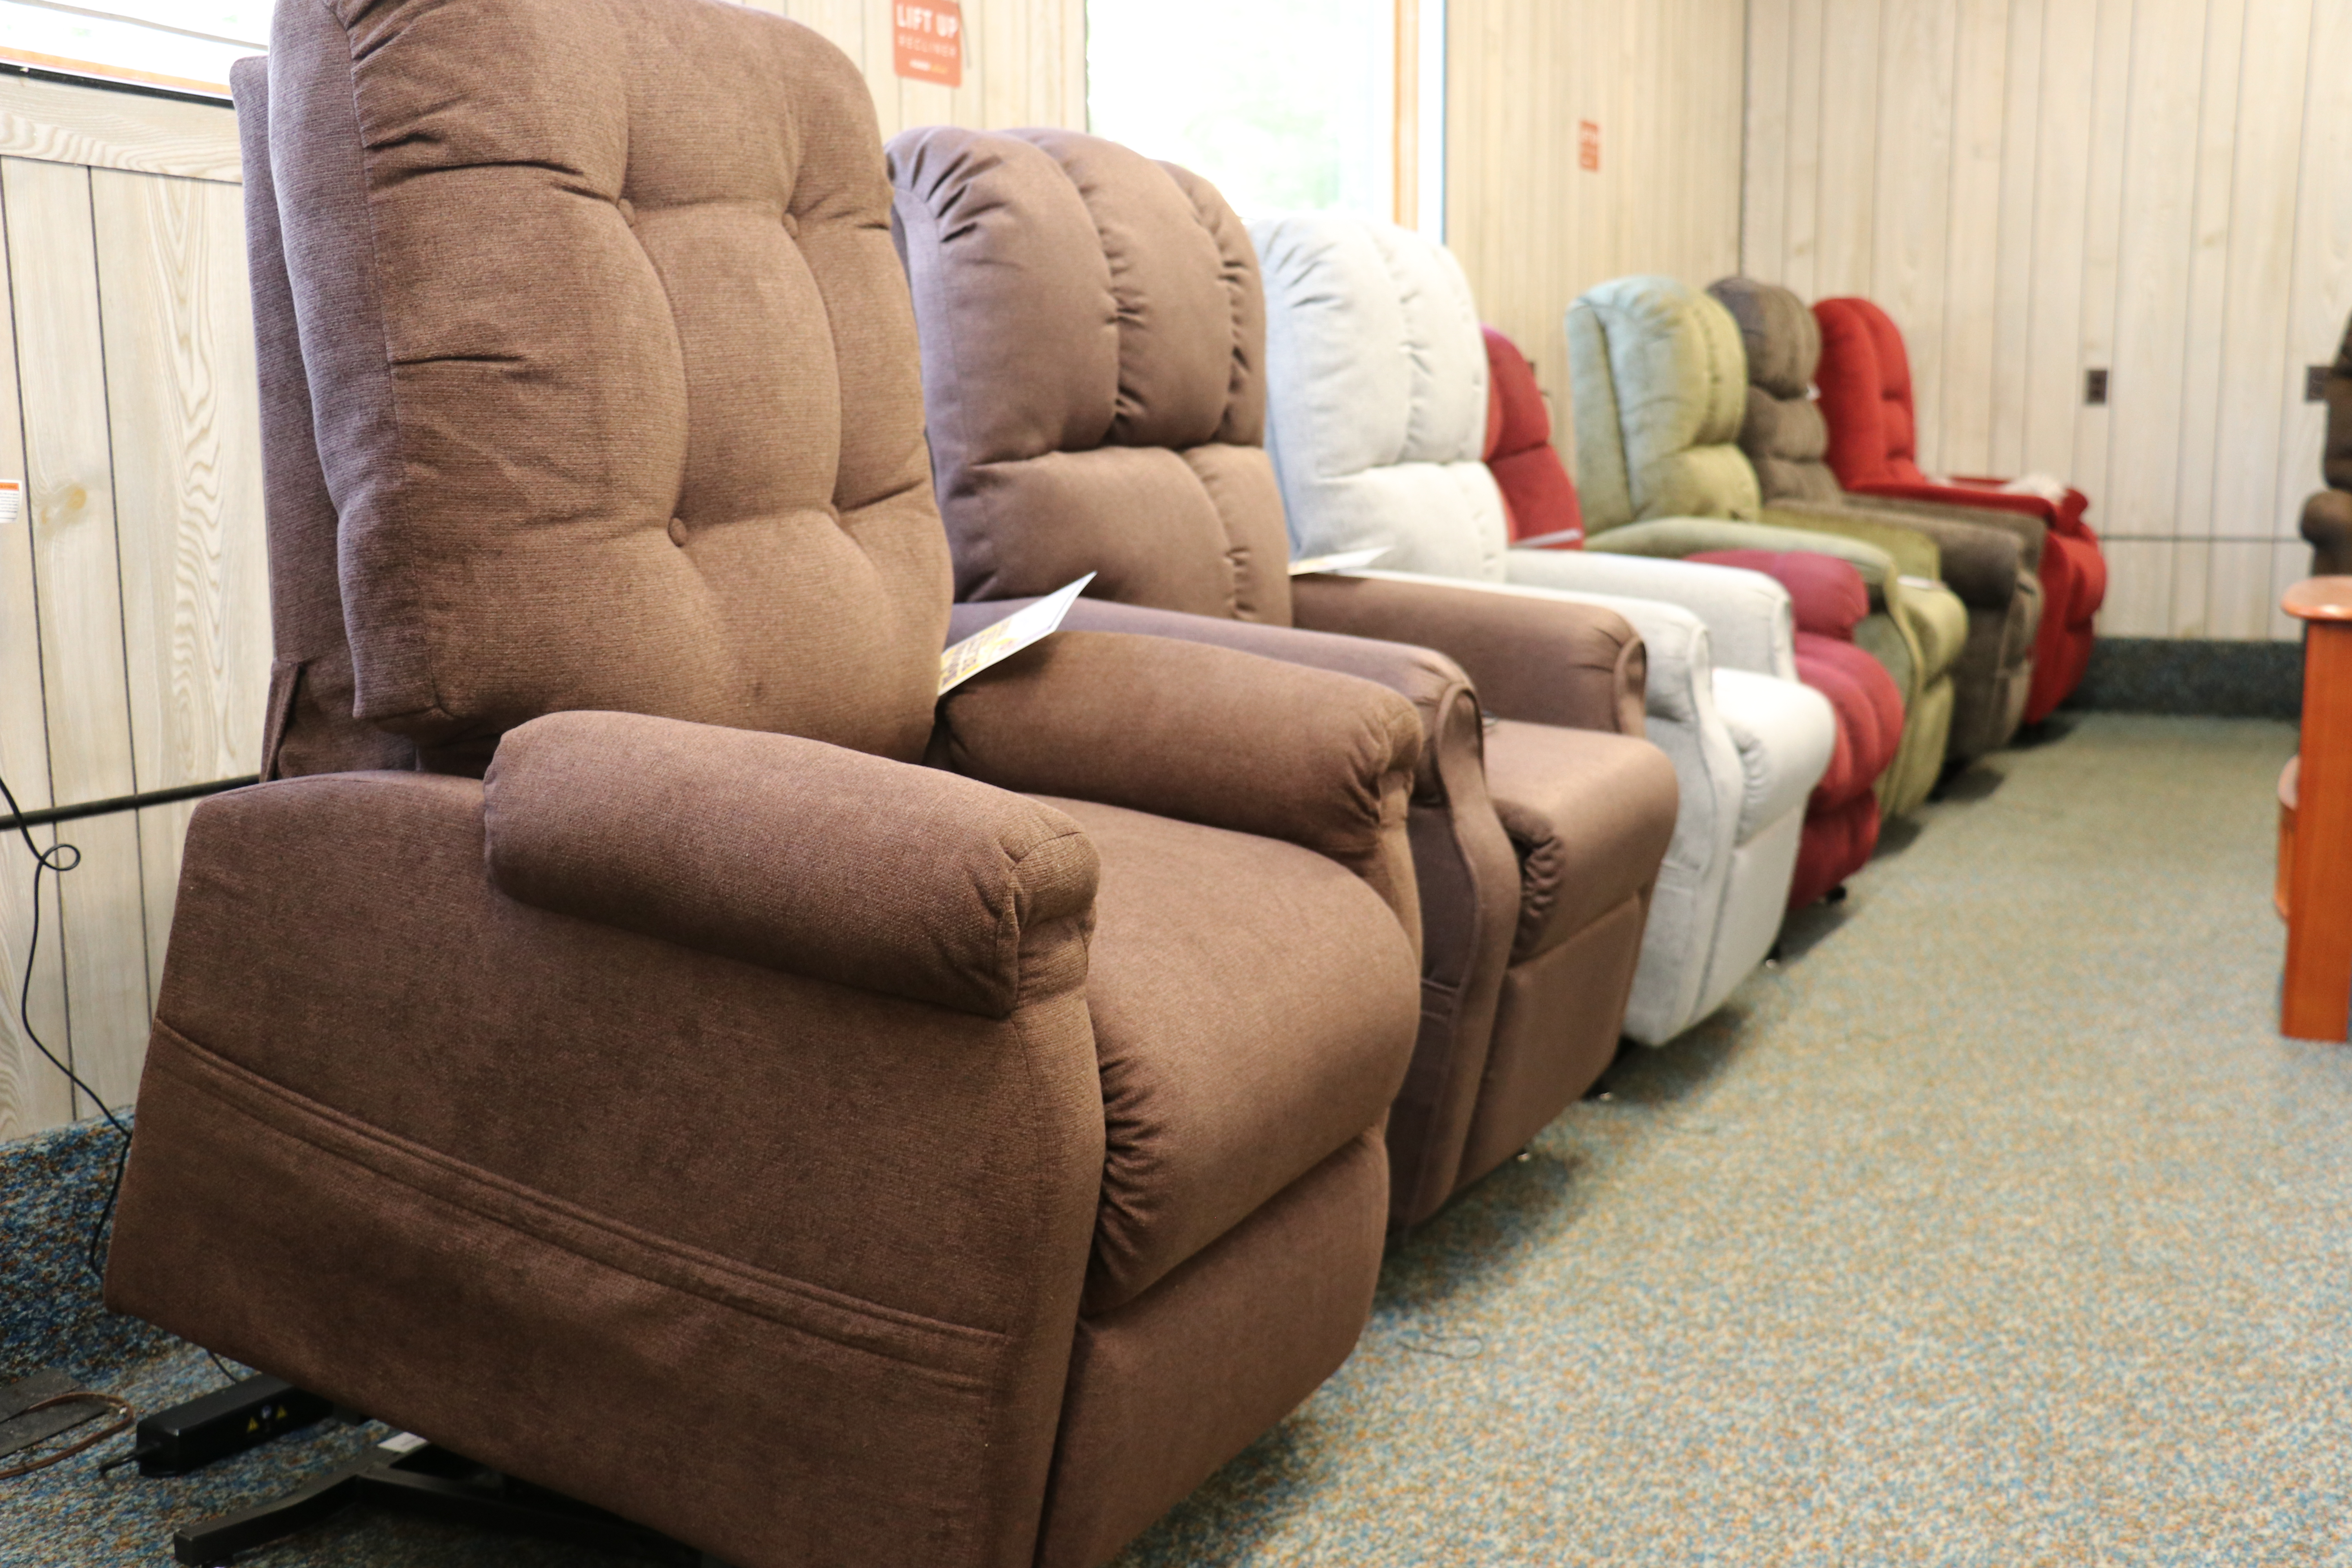 Gallant Discount Furniture | Roxbury Maine 0036